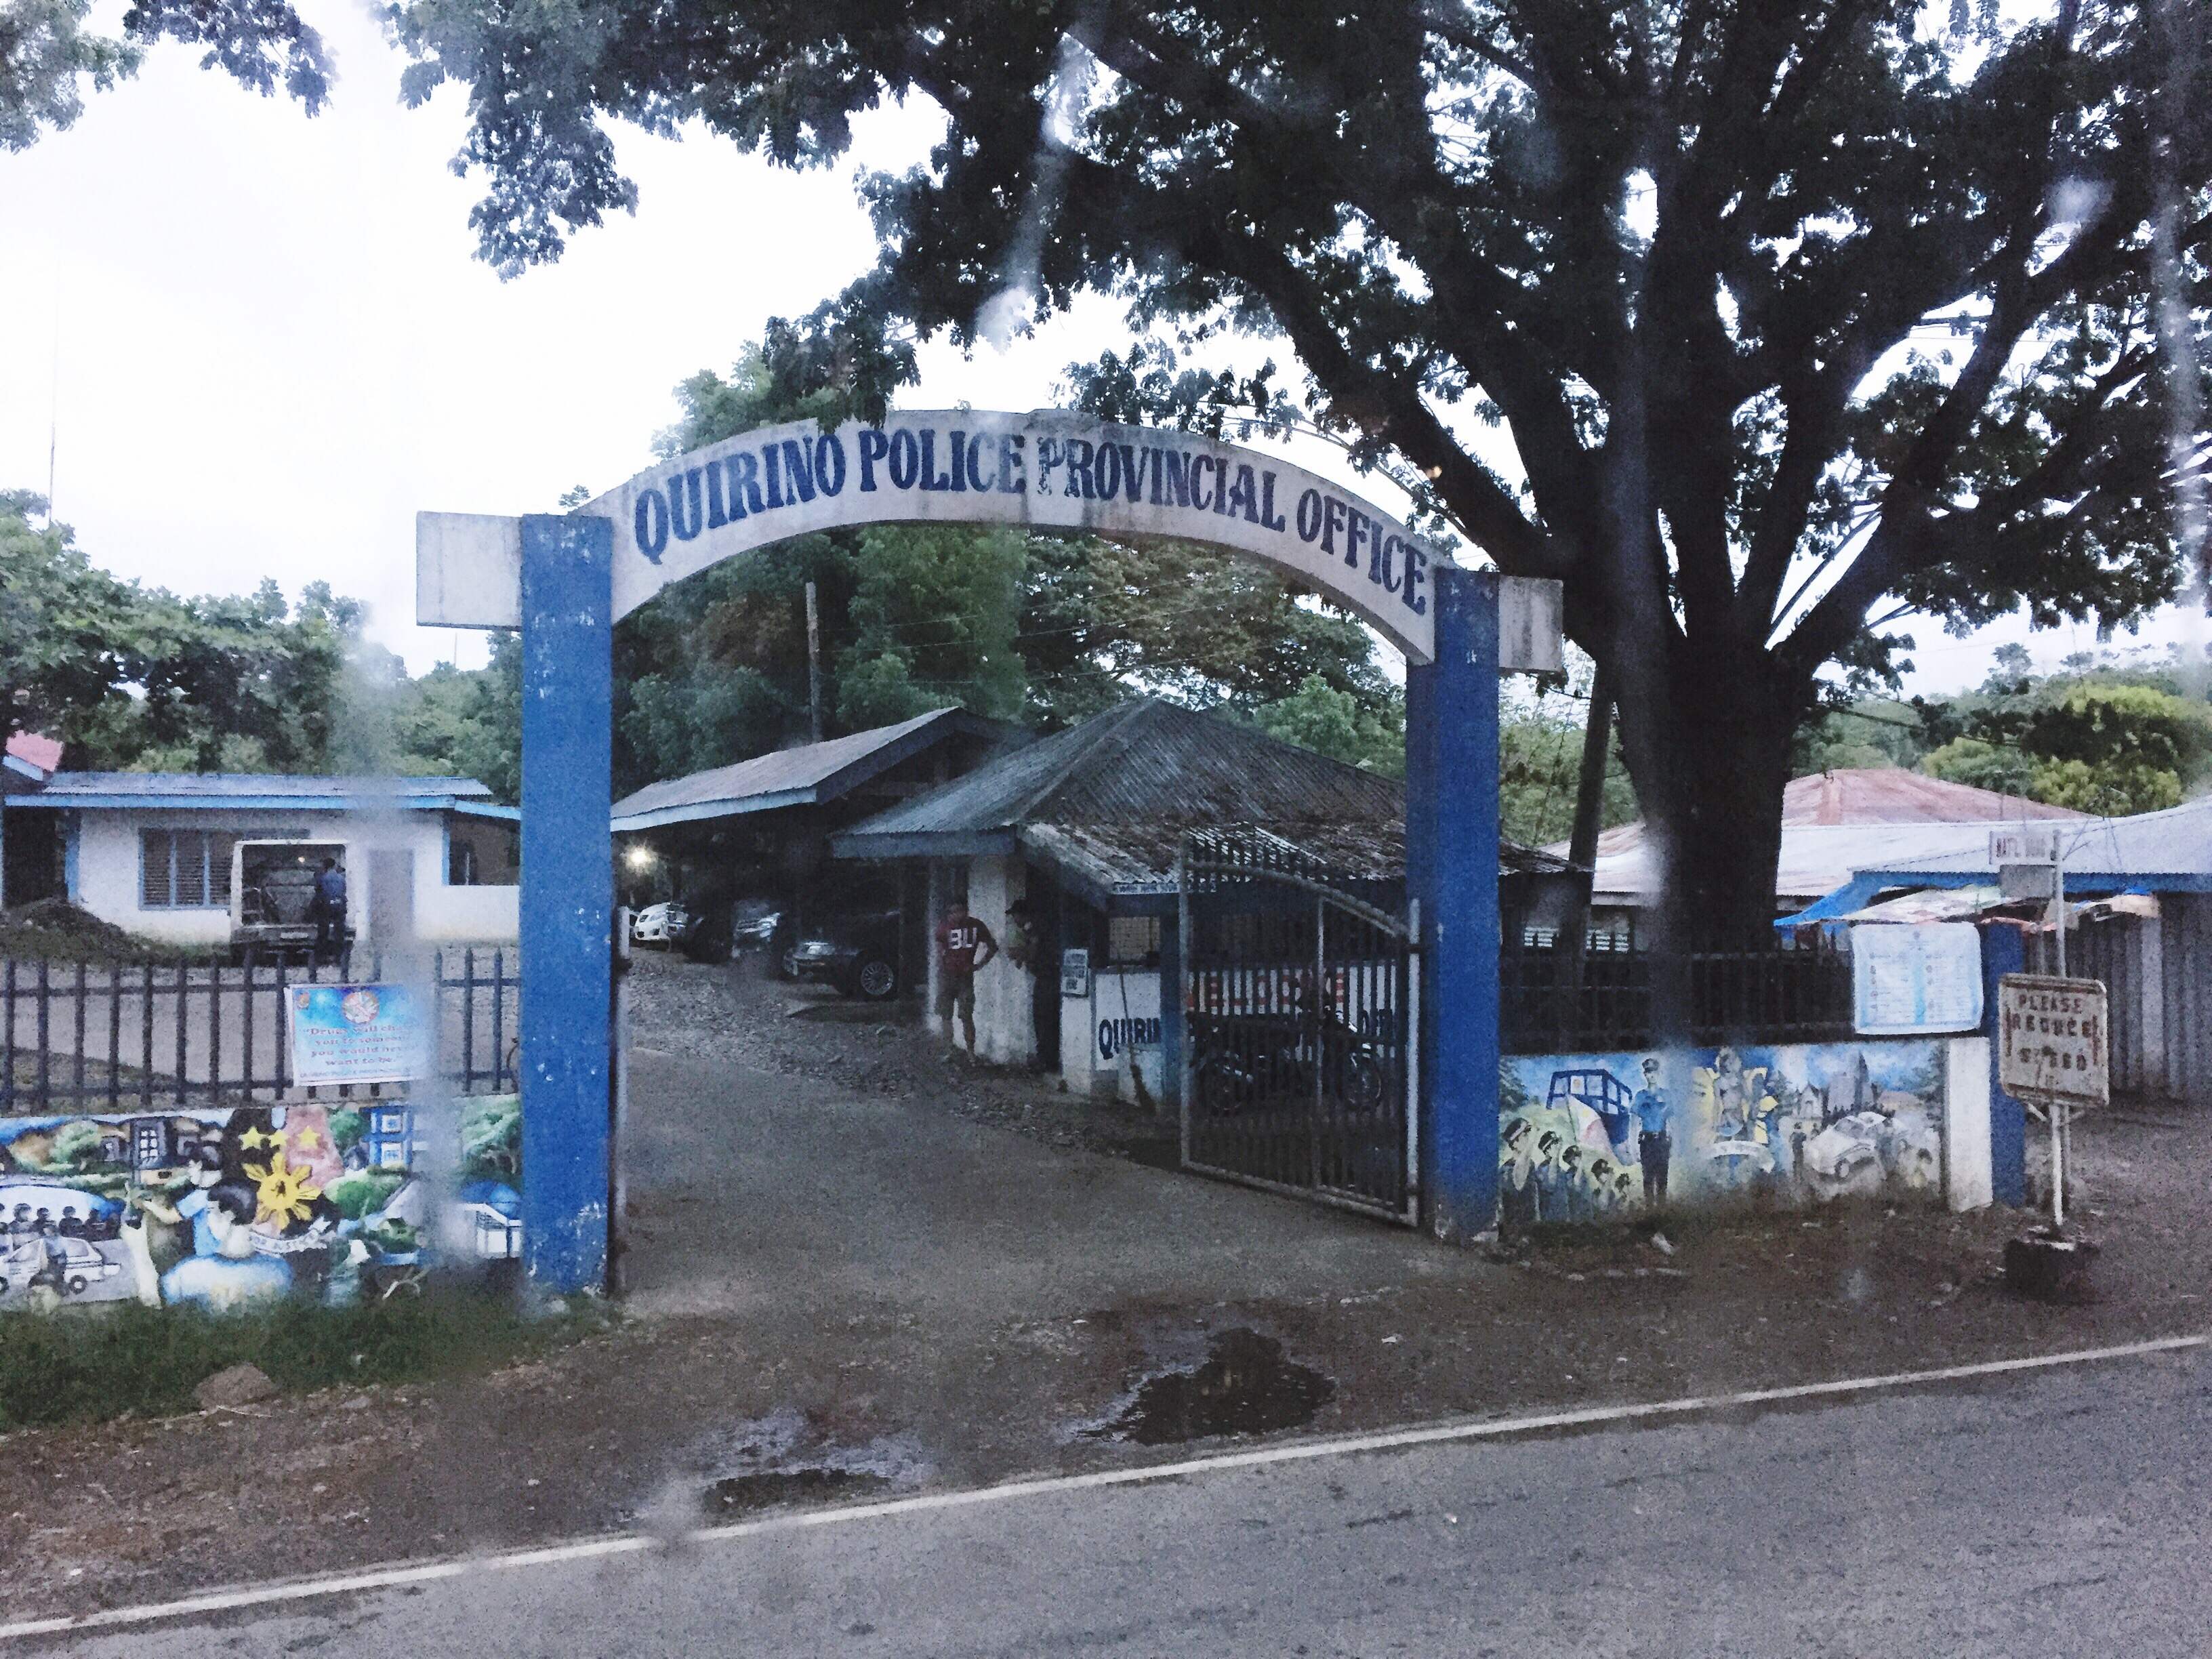 quirino-police-provincial-office-coffeehan